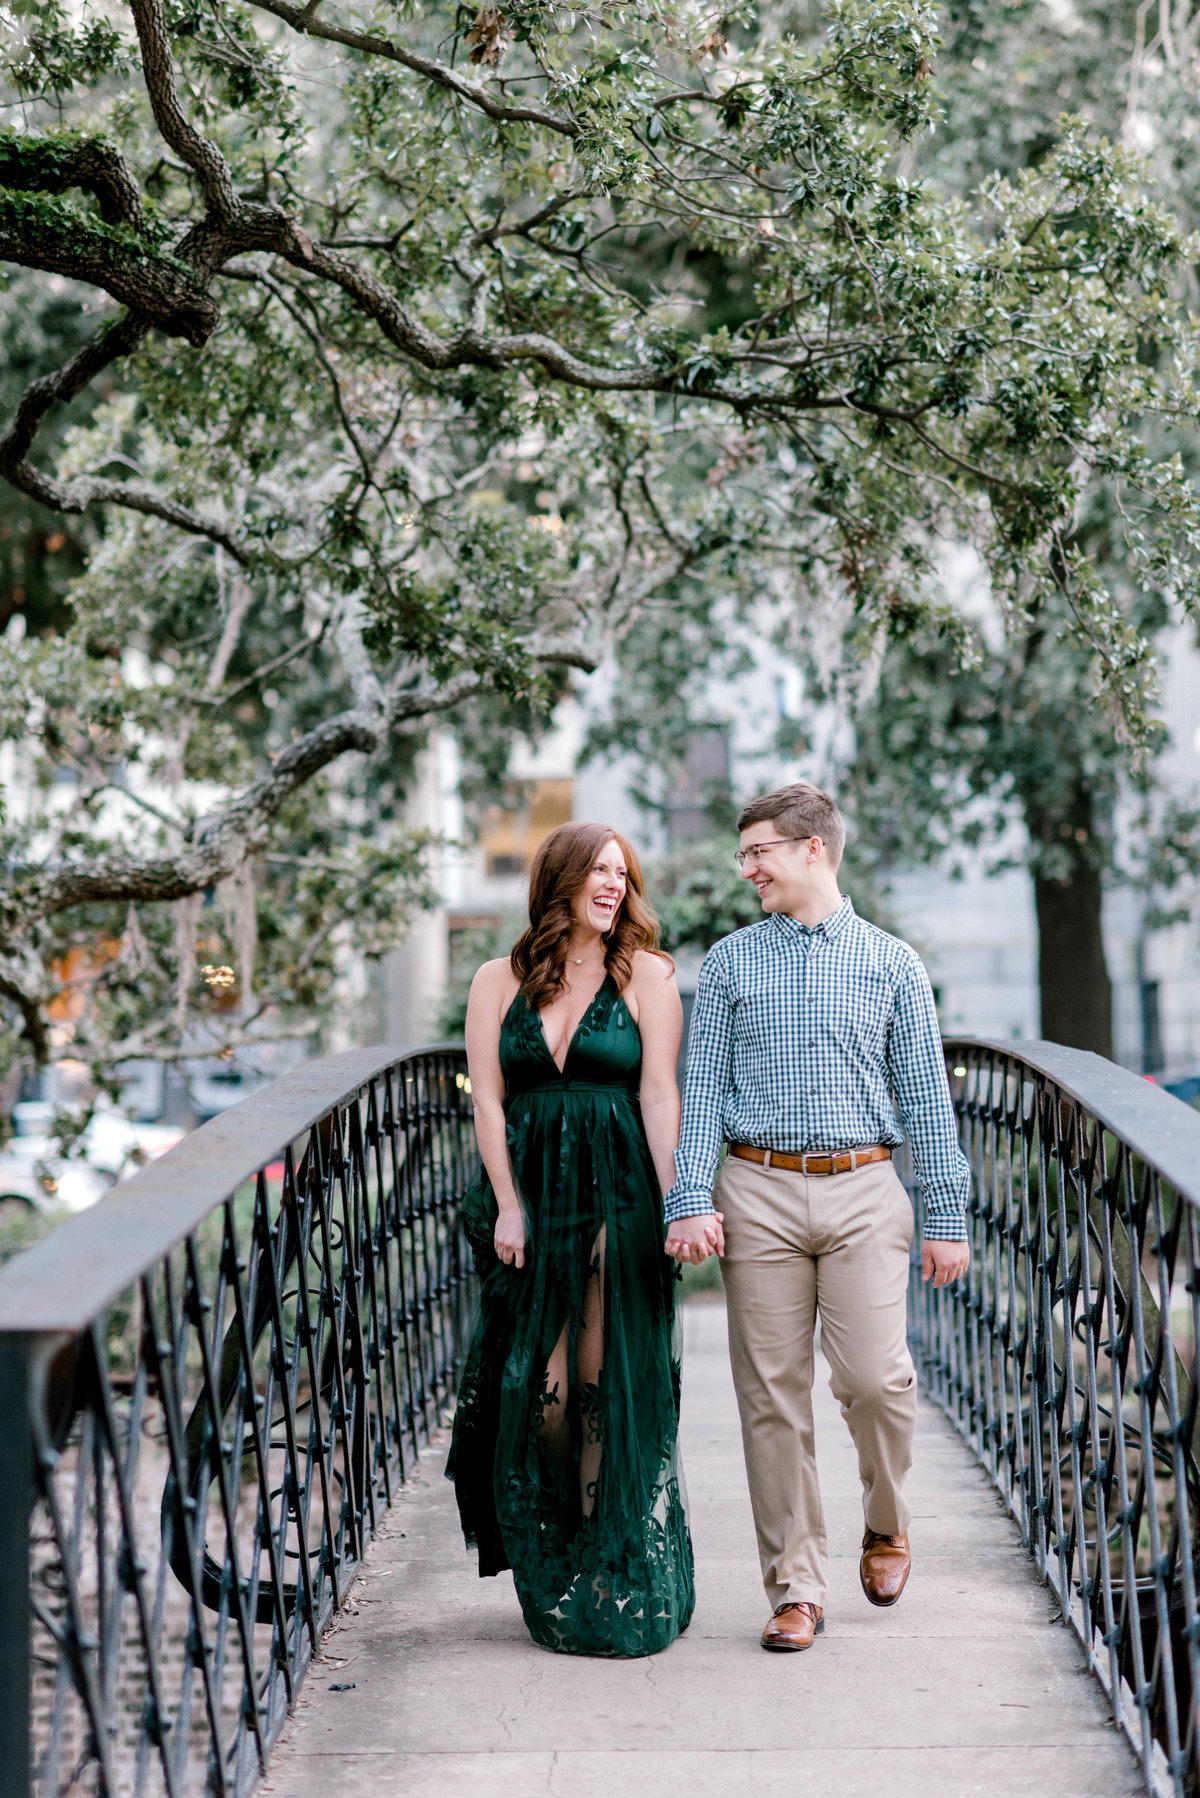 Factors Walk Savannah Georgia Engagement